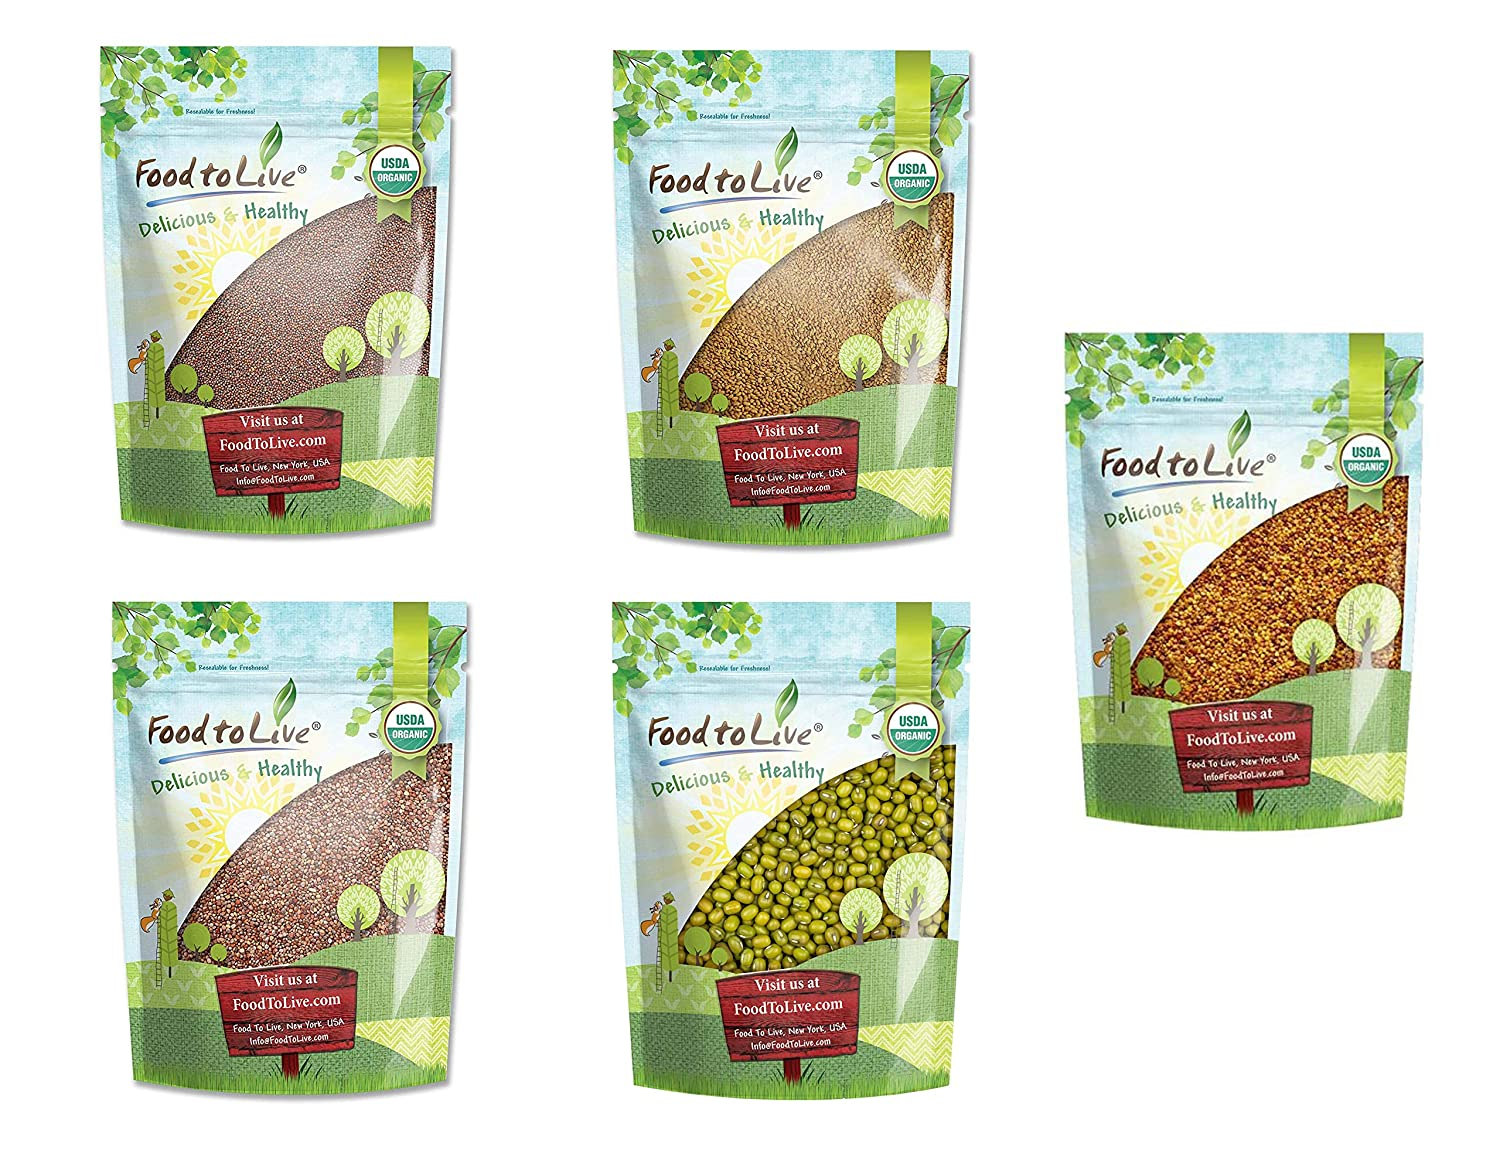 Organic Sprouting Seeds in a Gift Box - A Variety Pack of Broccoli Seeds, Alfalfa Seeds, Radish Seeds, Mung Beans, Clover Seeds